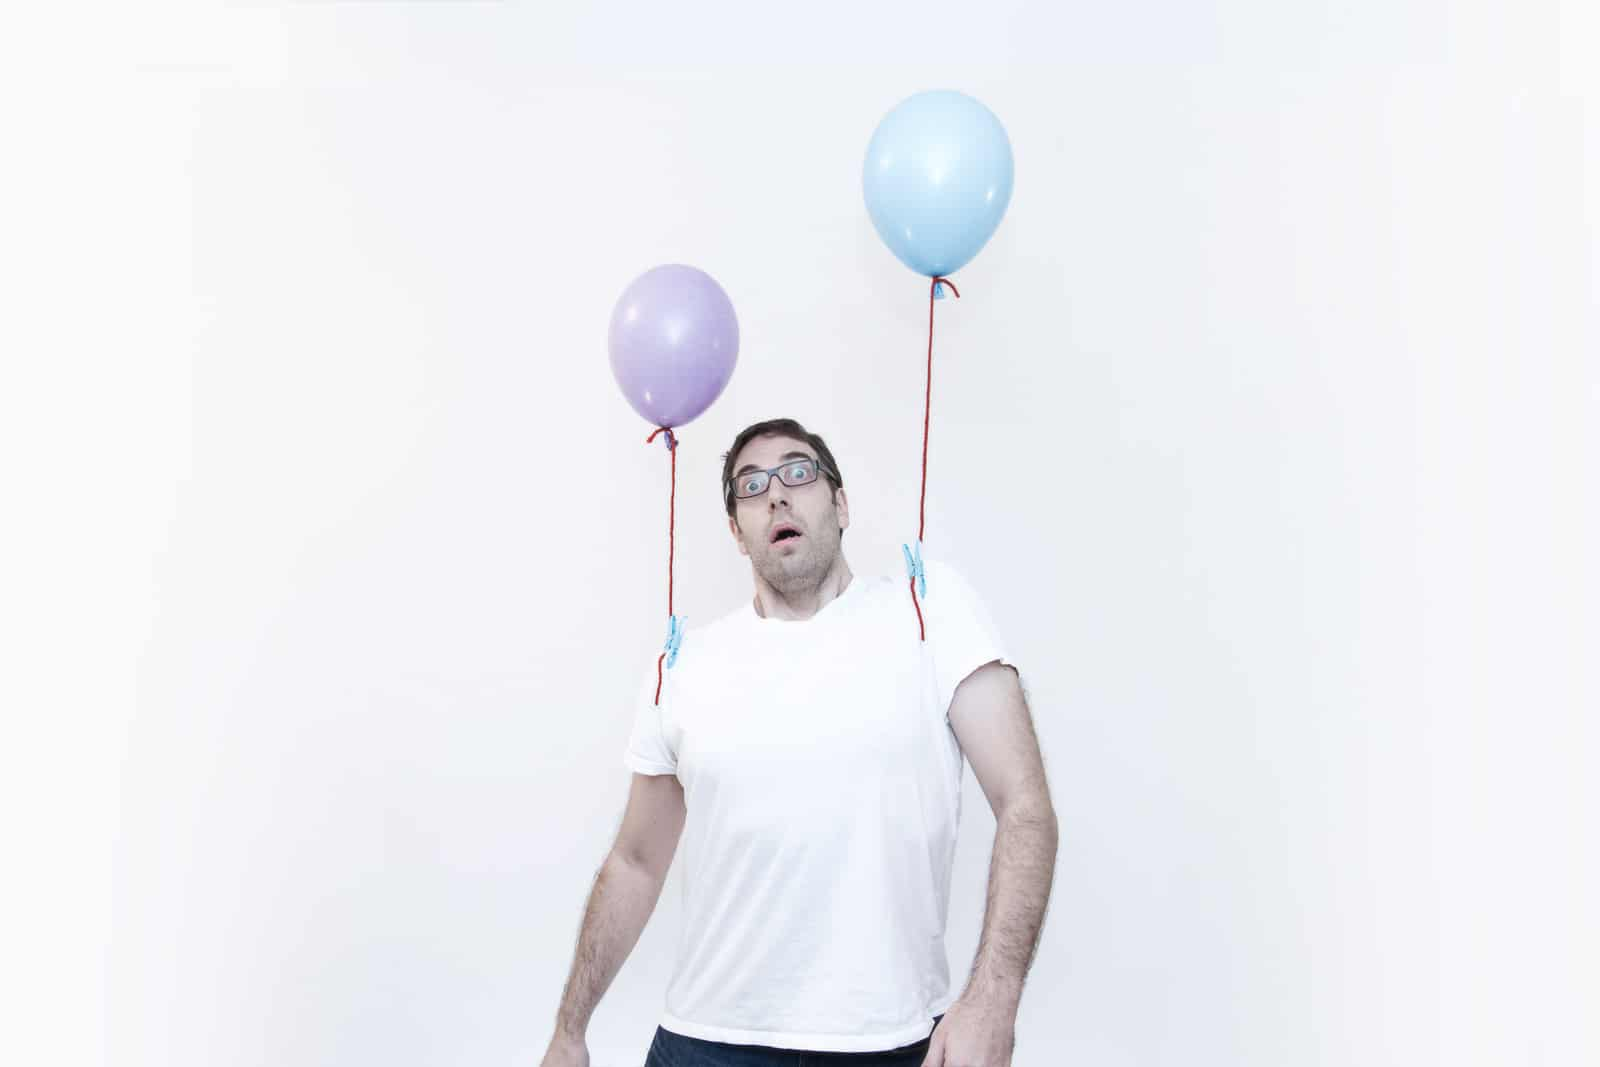 Narrative photography - Inflated self-portraits